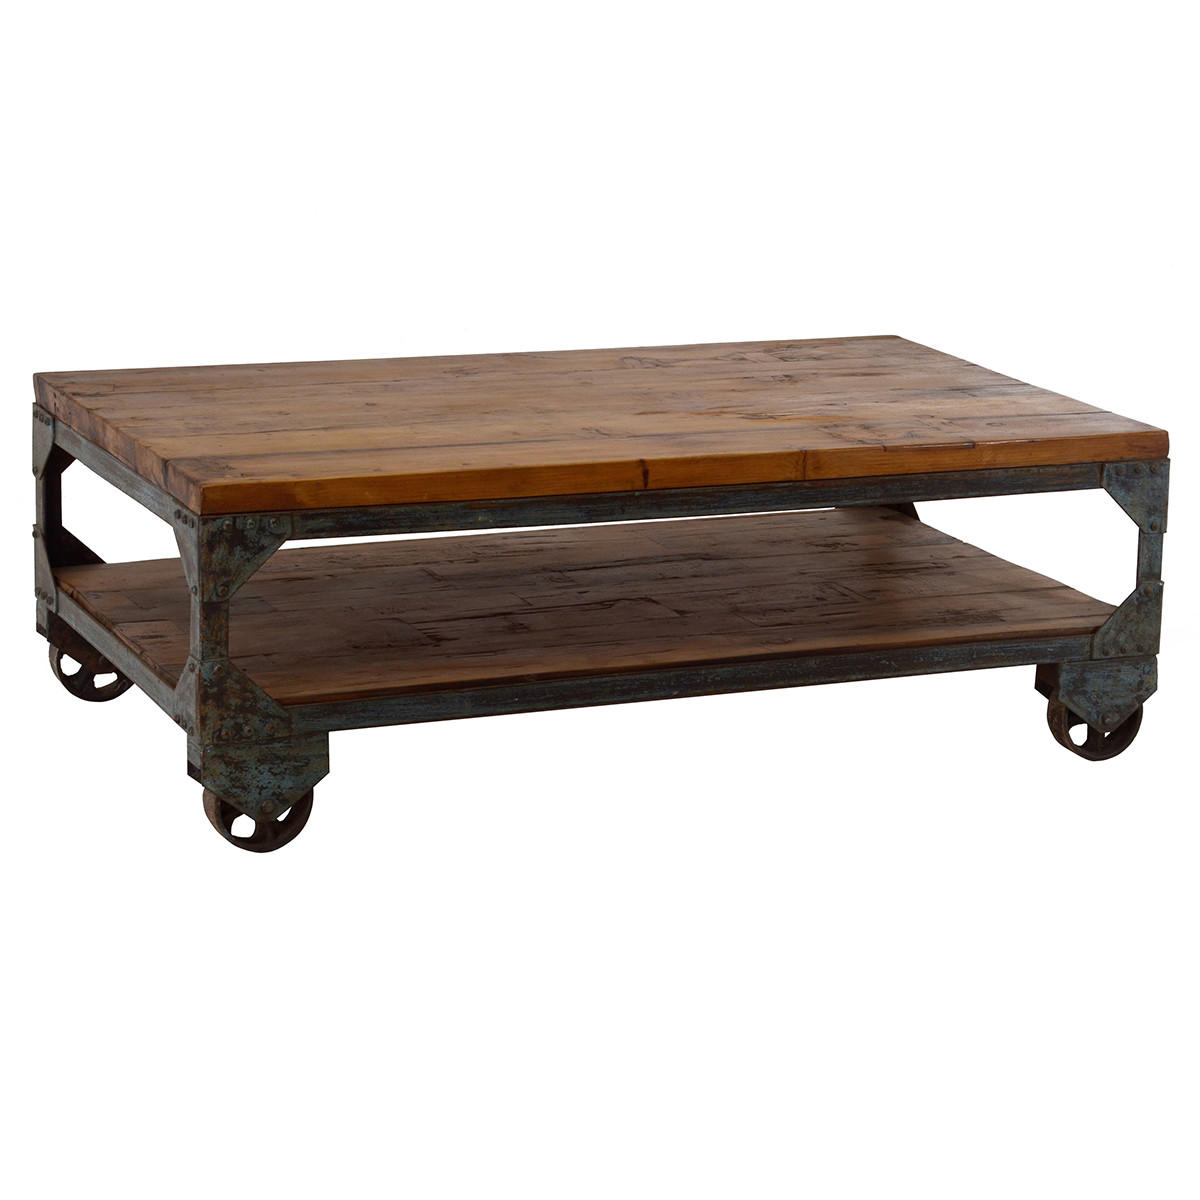 Superb img of Iron Wood Coffee Table on Wheels from Wrightwood Furniture with #644128 color and 1200x1200 pixels